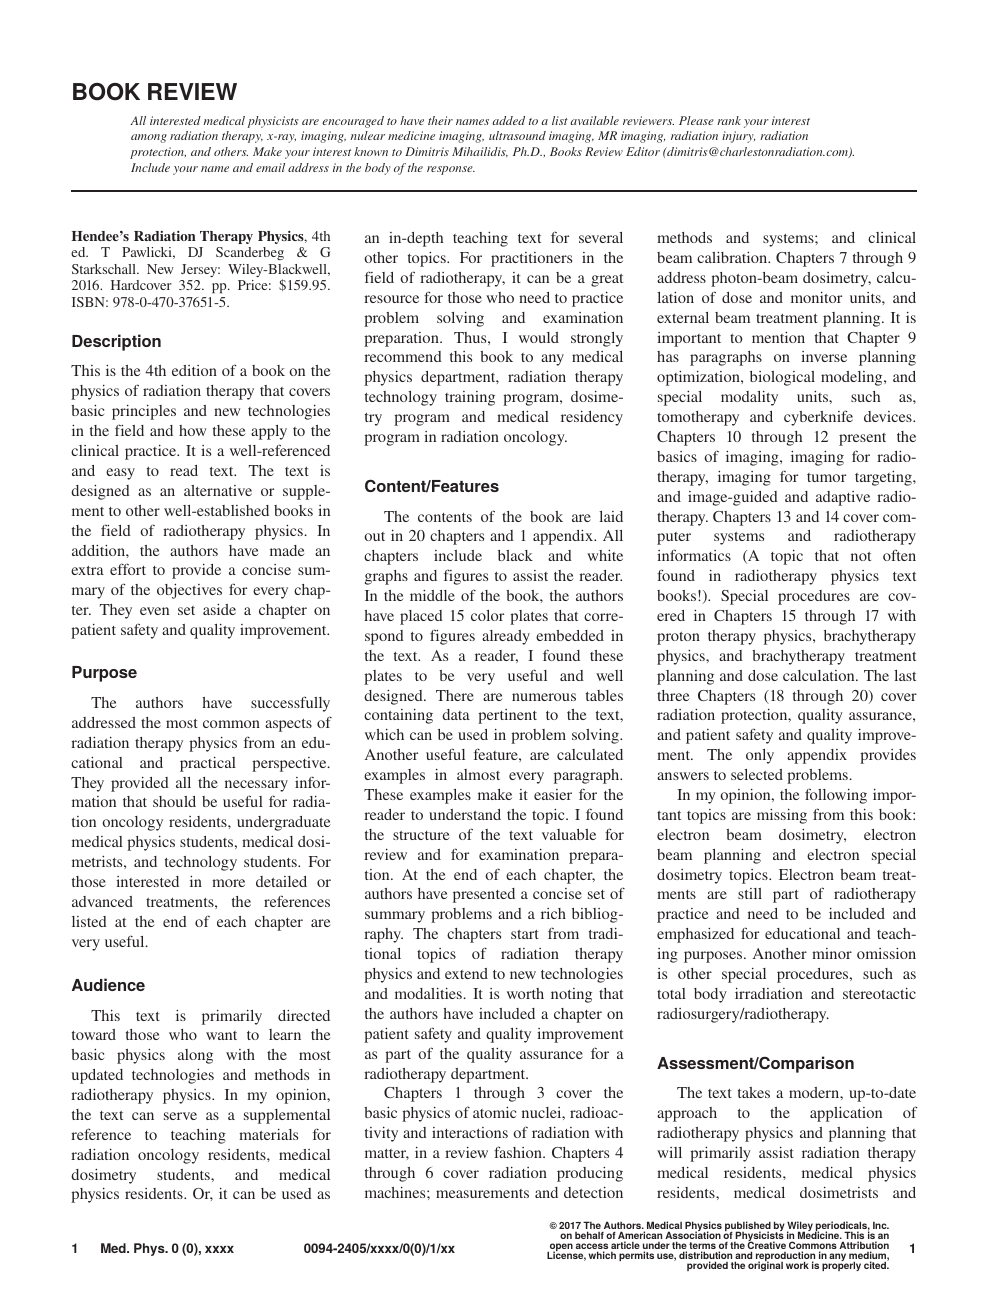 Research paper topics radiology